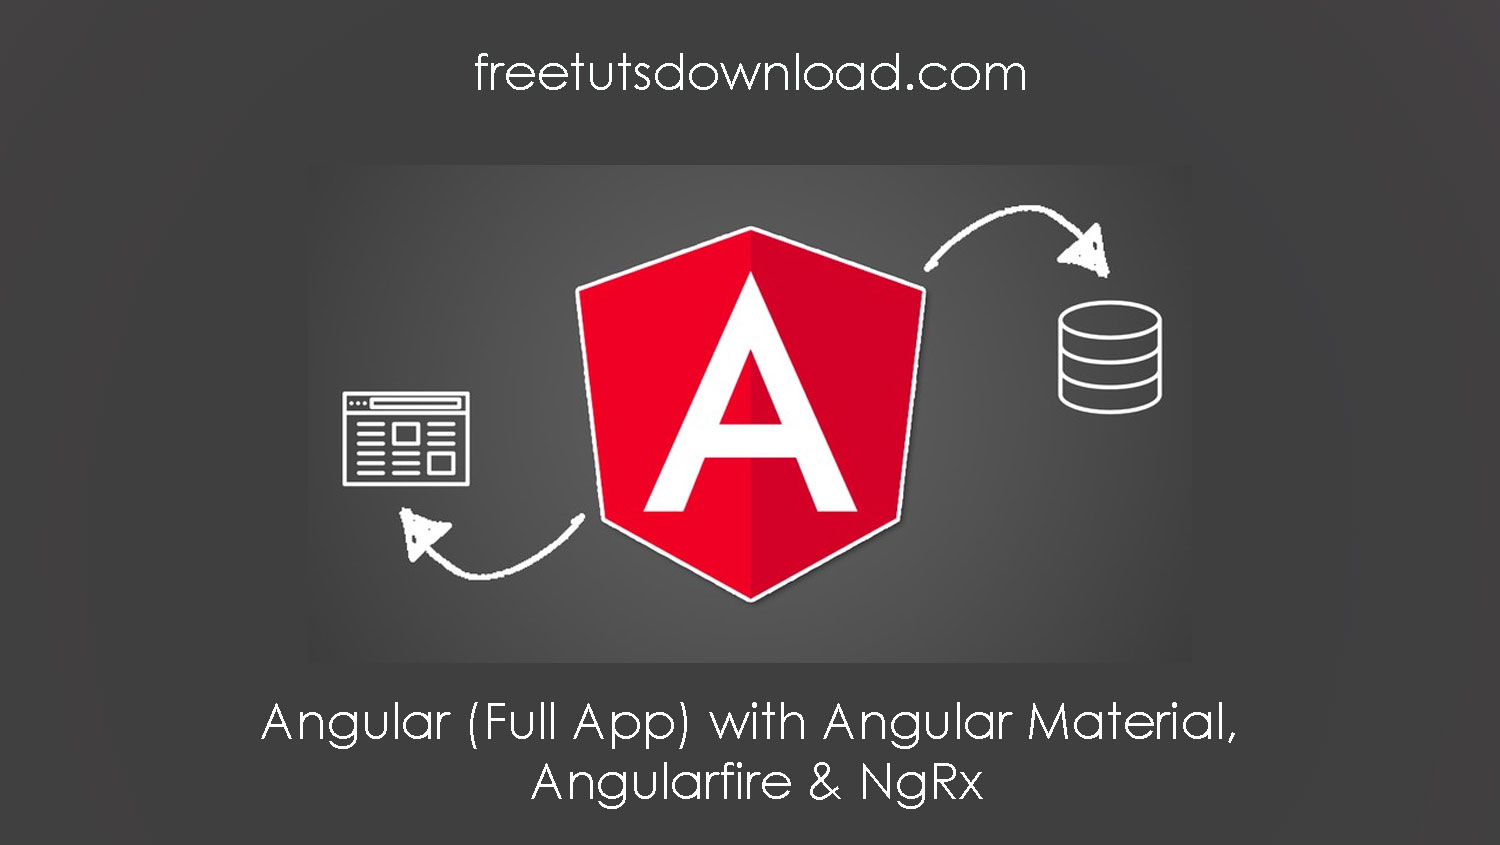 Angular (Full App) with Angular Material, Angularfire & NgRx free download